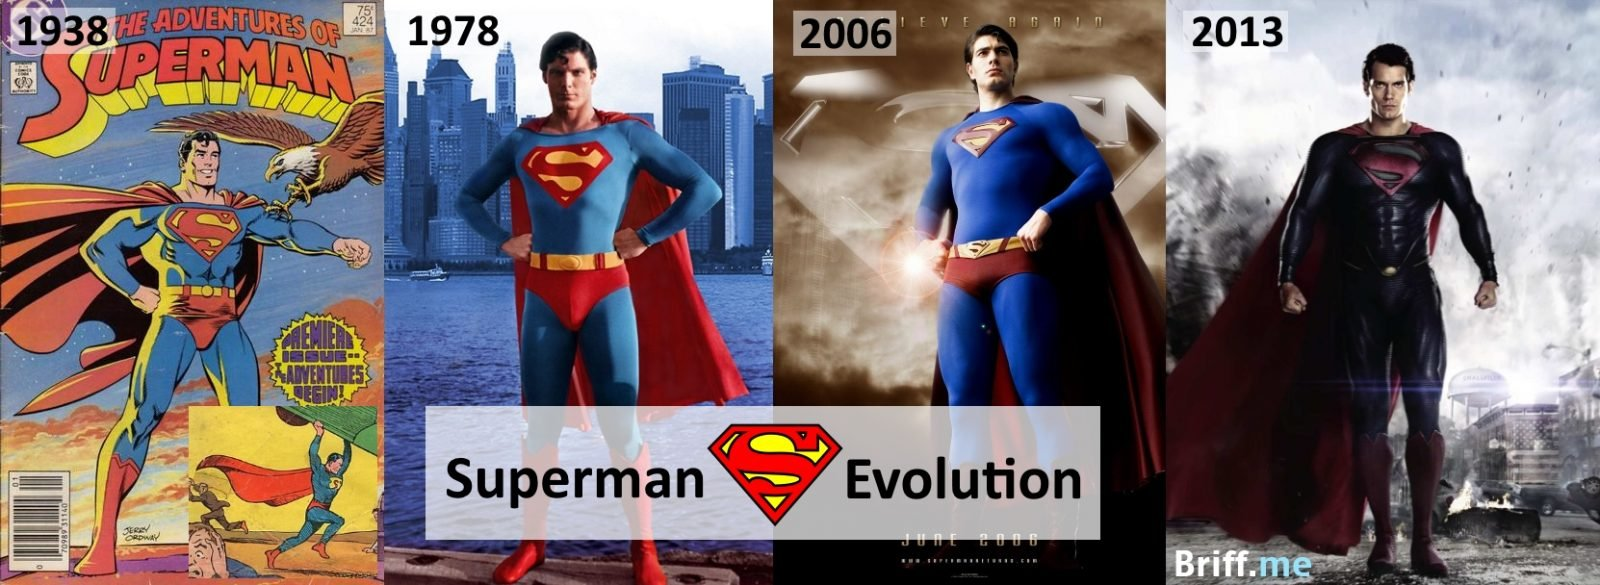 Superman Superhero Superhero Evolution Superman